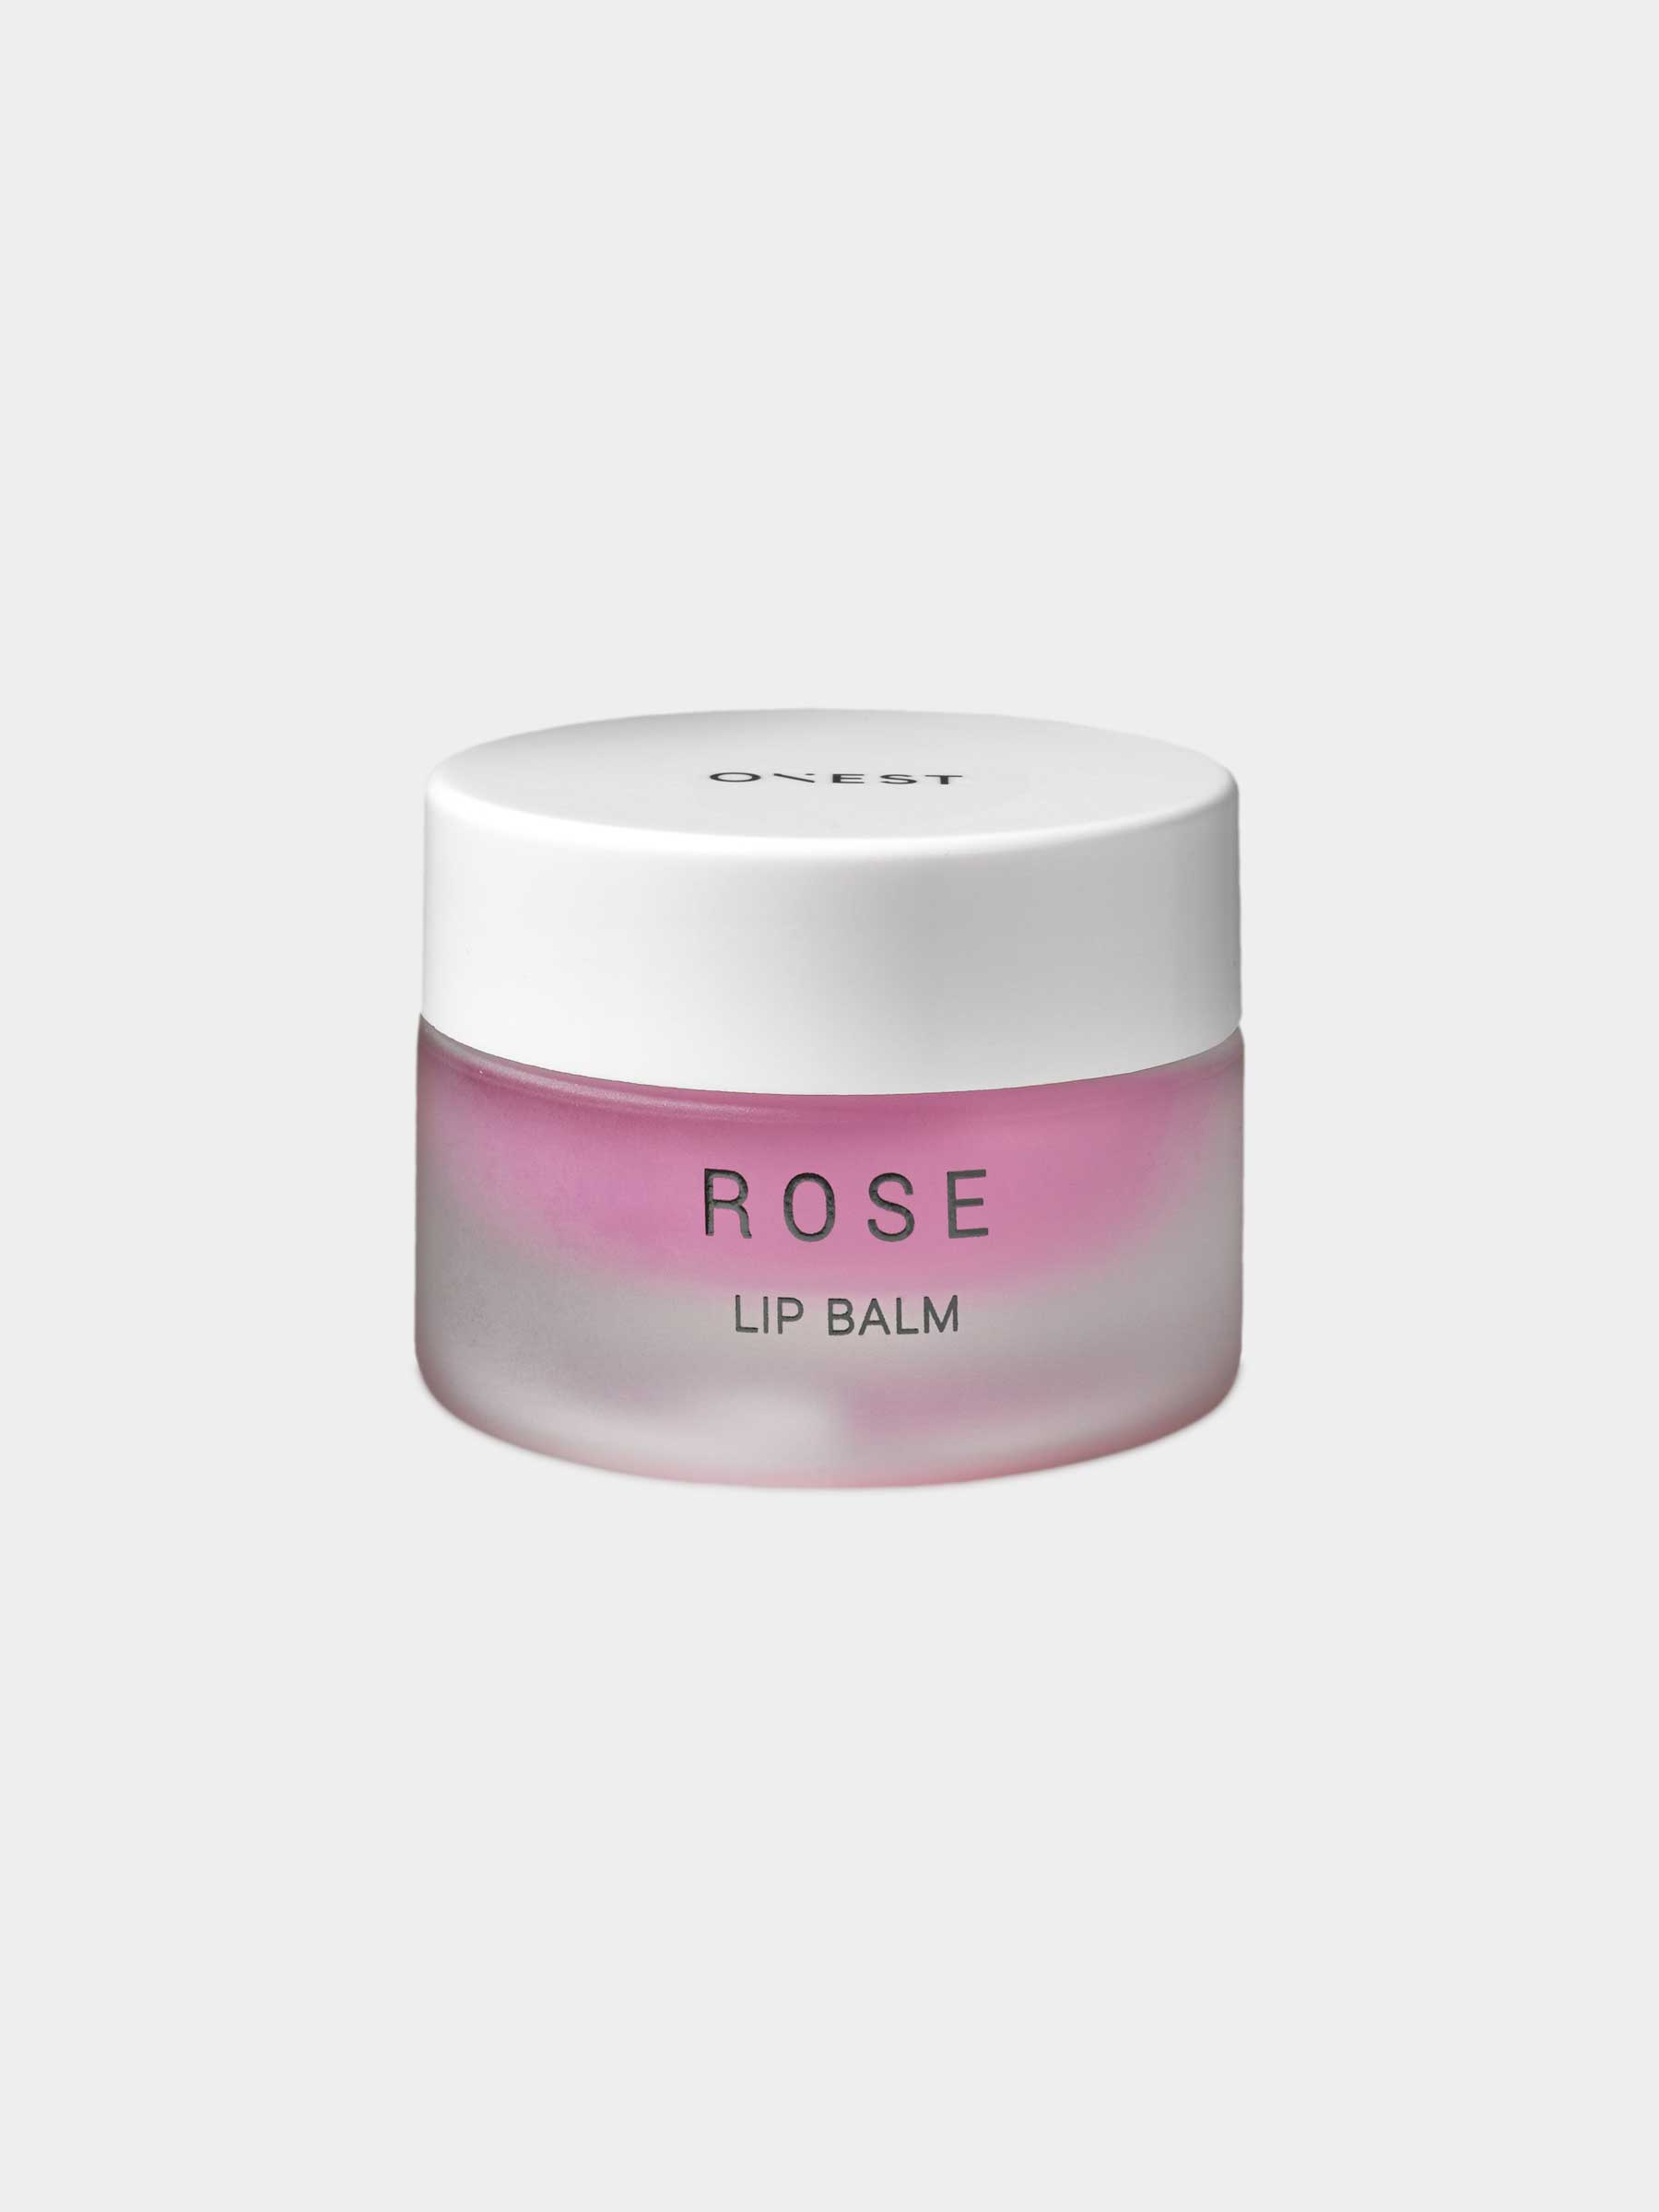 Natural Rose Lip Balm by Onest - available at utopiast.com